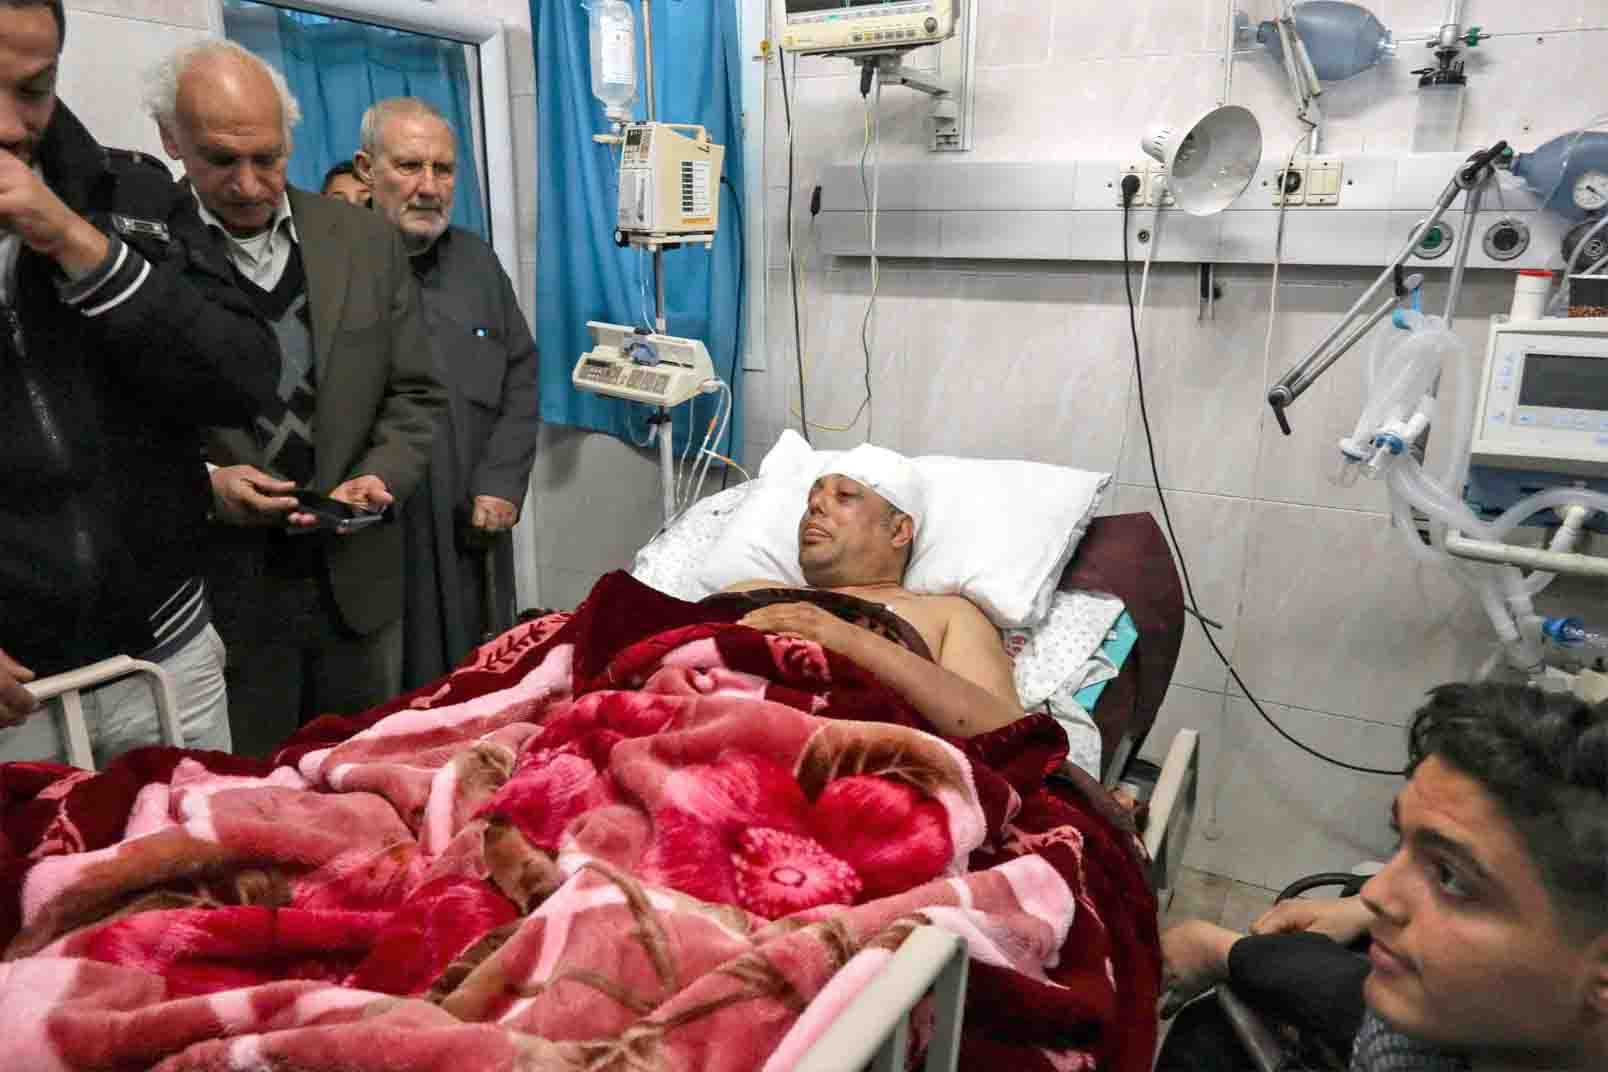 Out of control. Atef Abu Seif, spokesman for Fatah in Gaza, lies in a hospital bed after being badly beaten up in the Gaza Strip, March 19. (AFP)